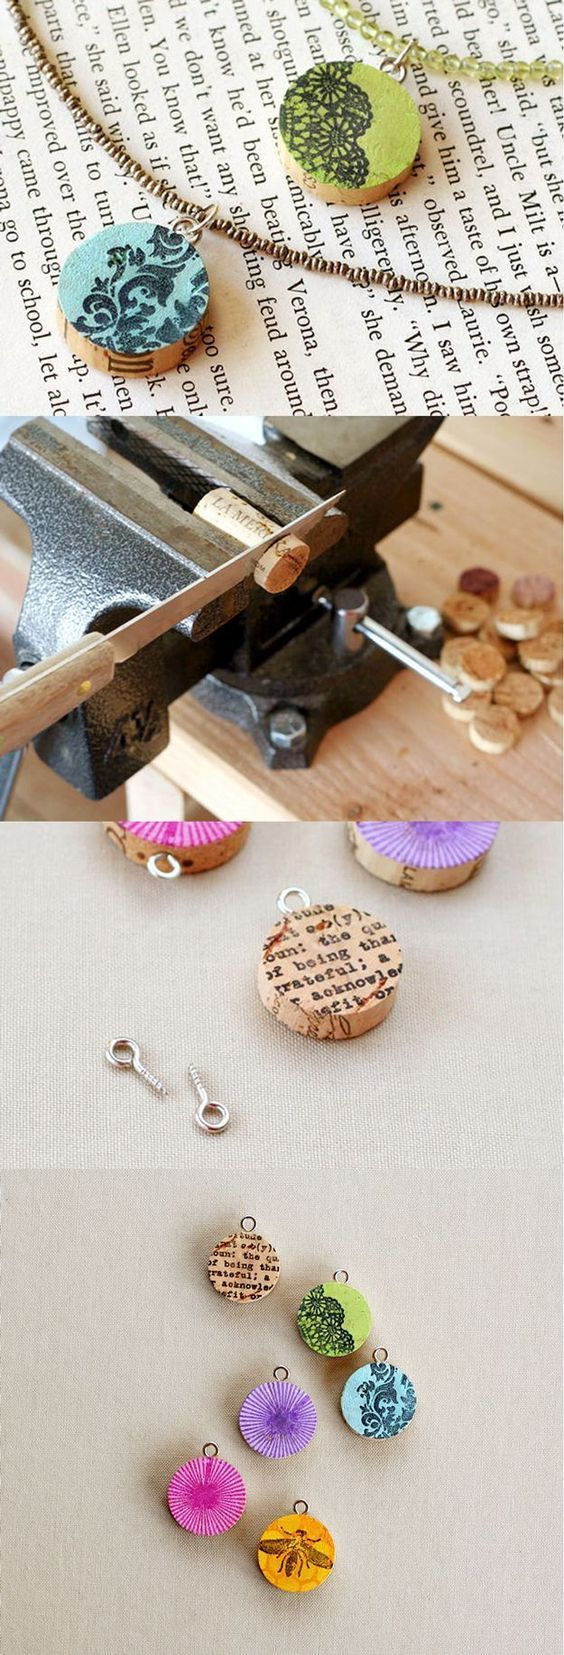 DIY Jewelry Ideas: Easy Cork Pendants | DIY Cork Jewelry for Teens by DIY Ready at http://diyready.com/more-wine-cork-crafts-ideas/